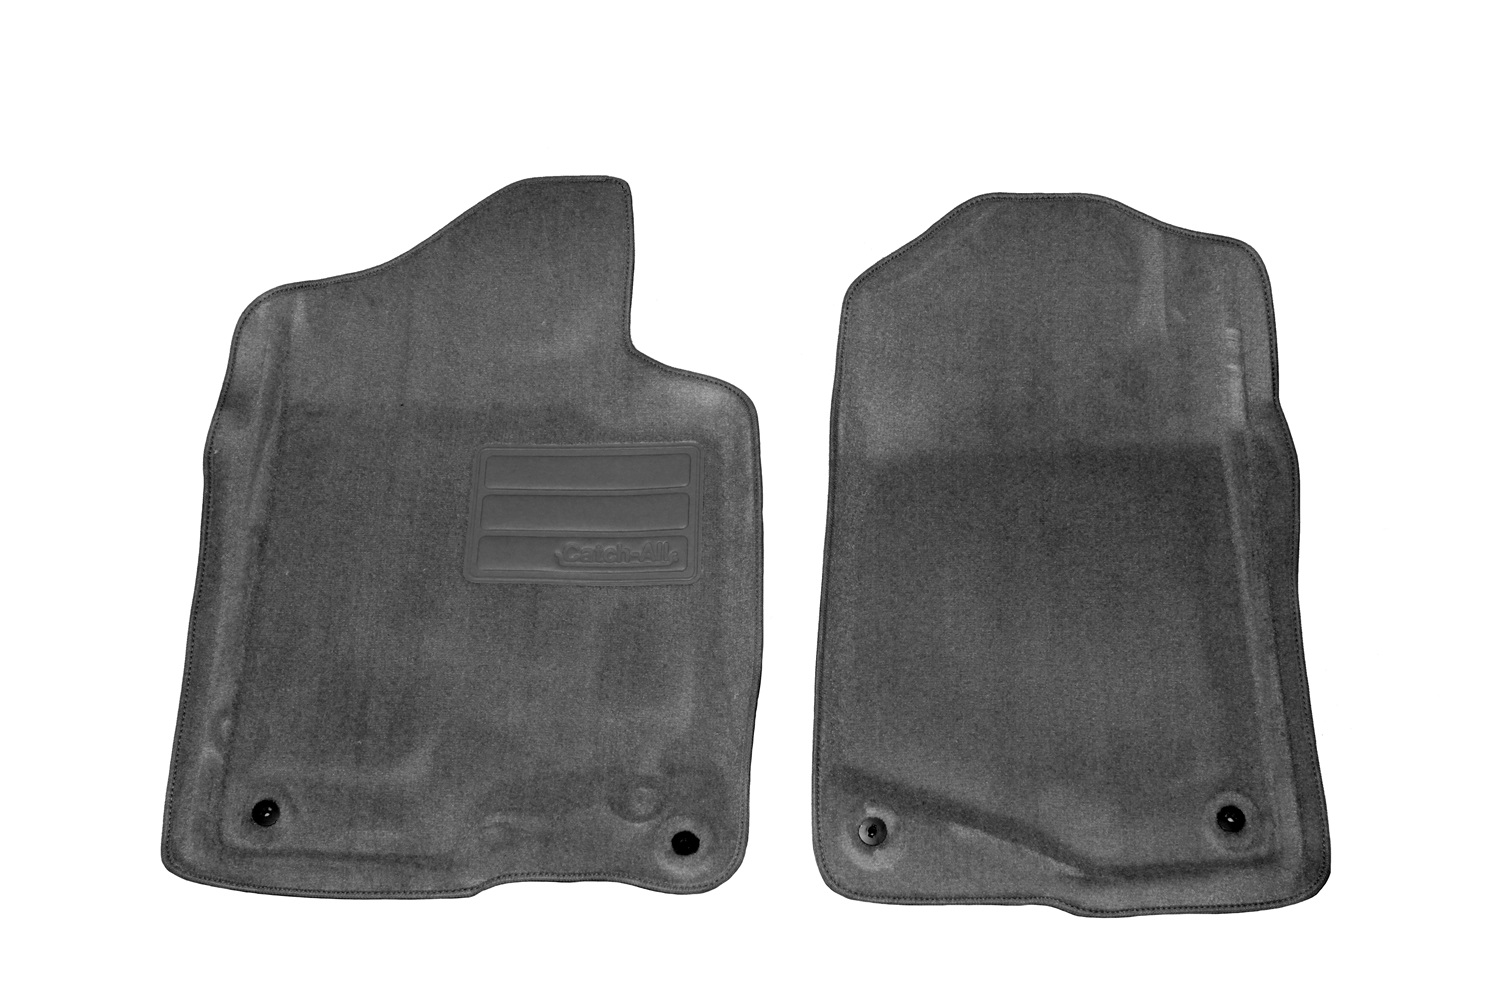 609561 Lund Catch All Black Carpet Floor Mats Front For